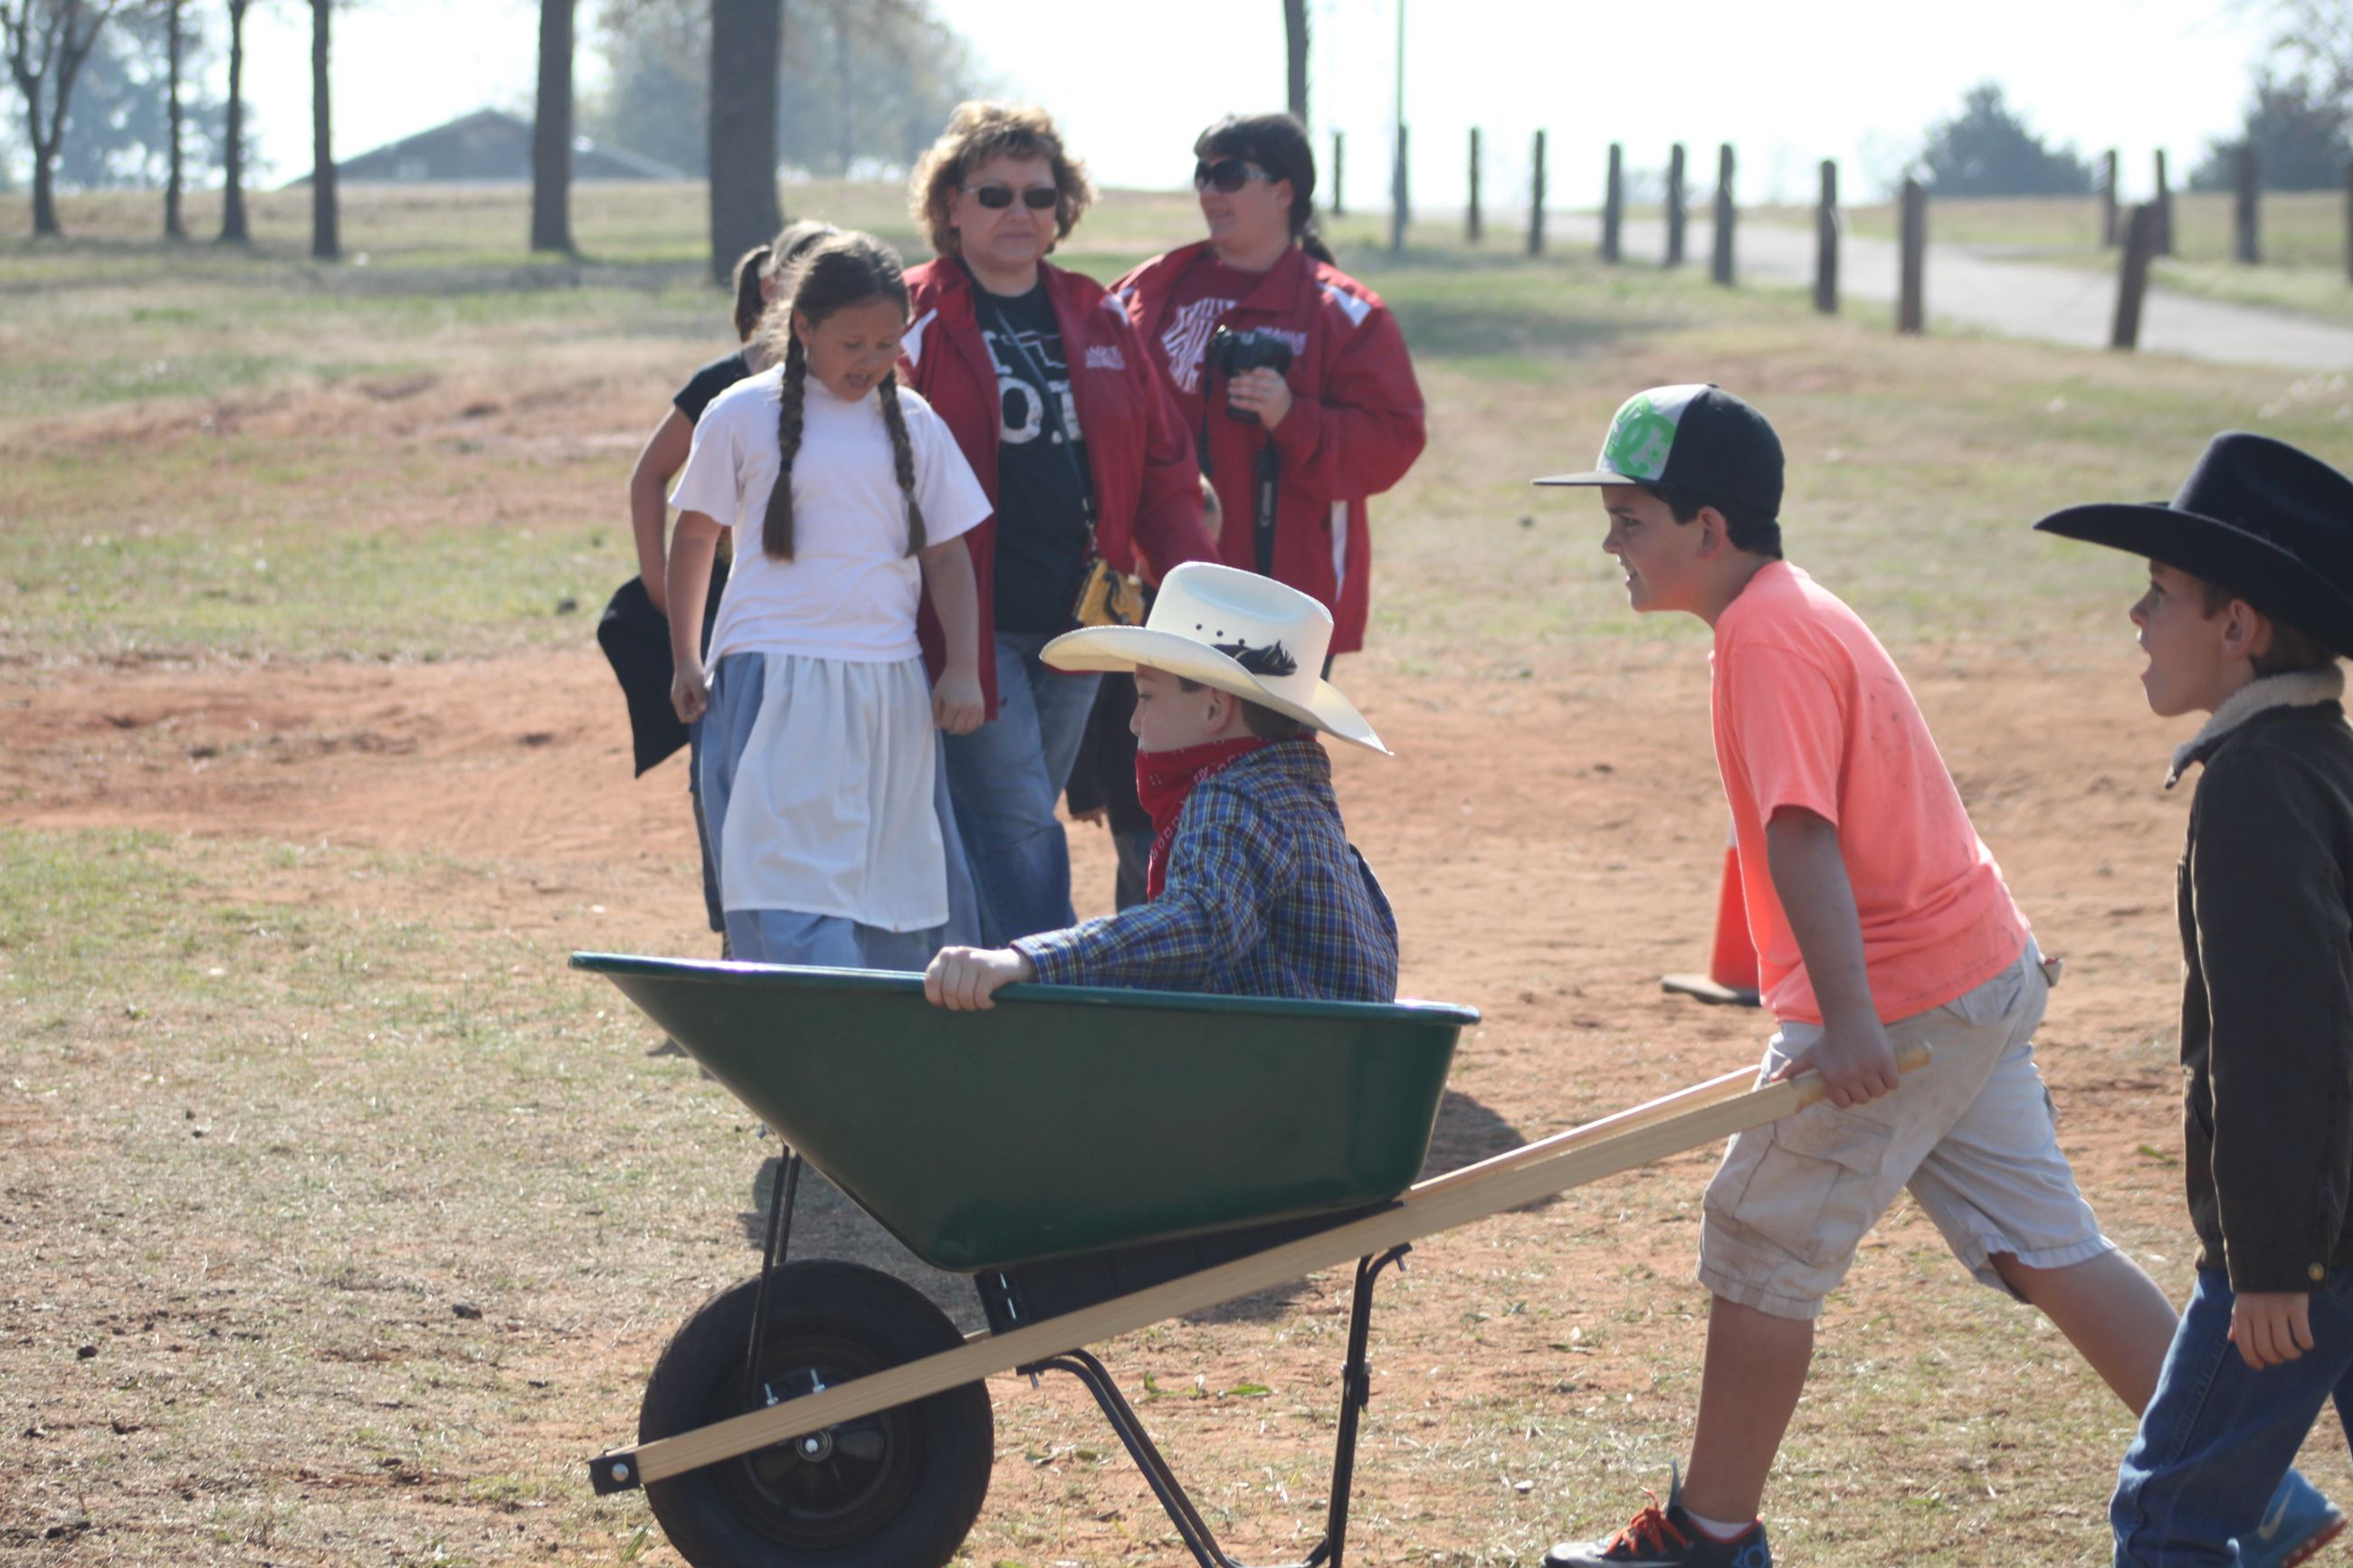 A boy pushes another boy in green wheelbarrow while others look on